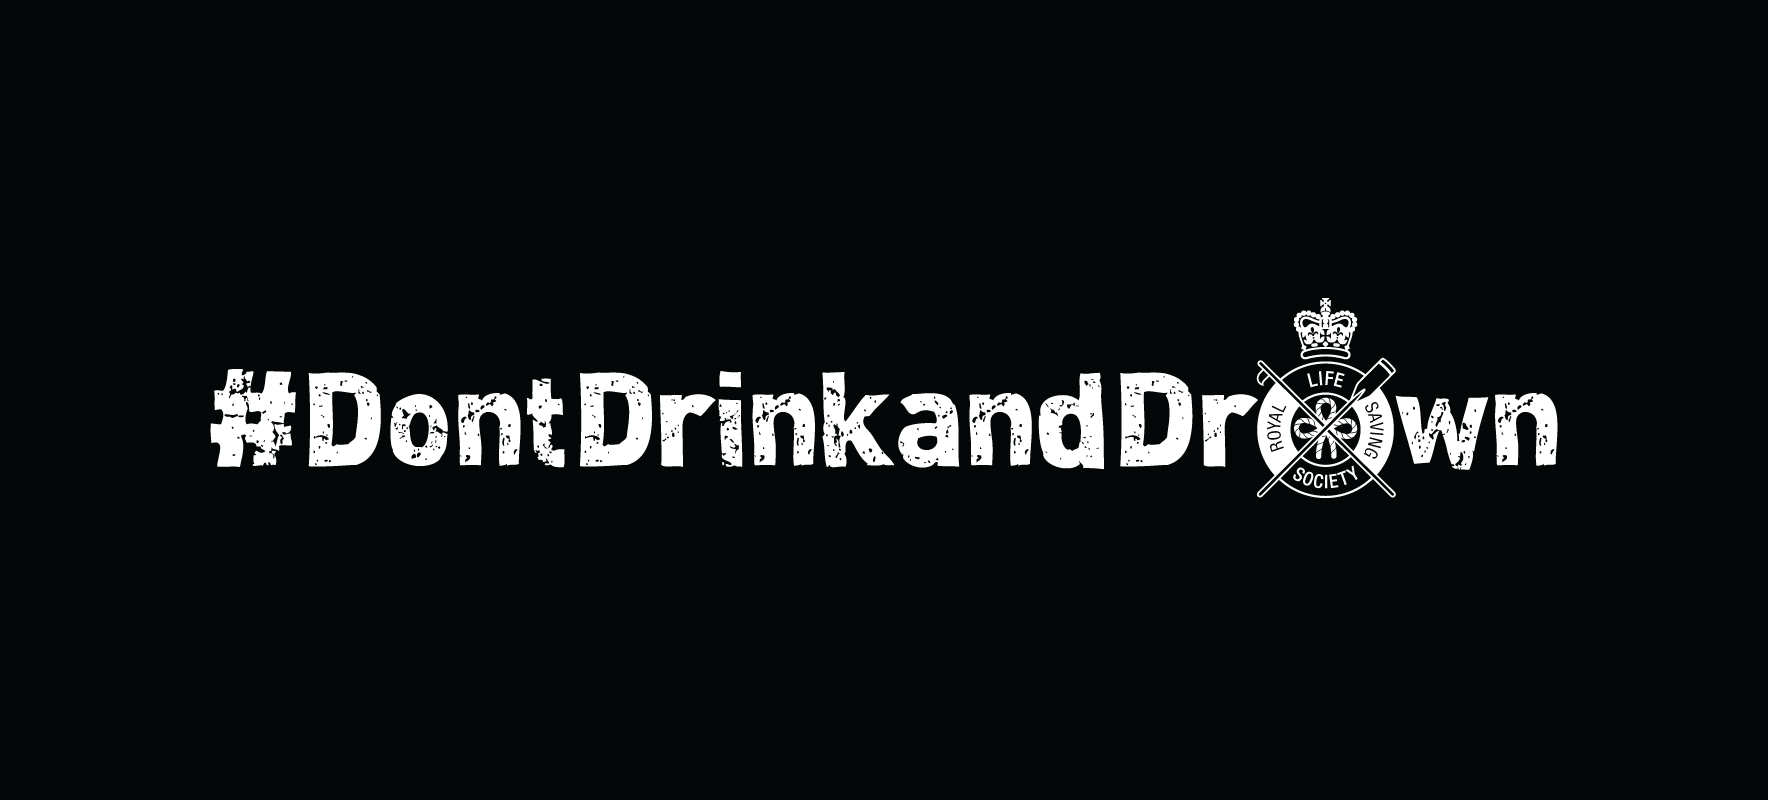 White Don't Drink and Drown campaign logo on a black background